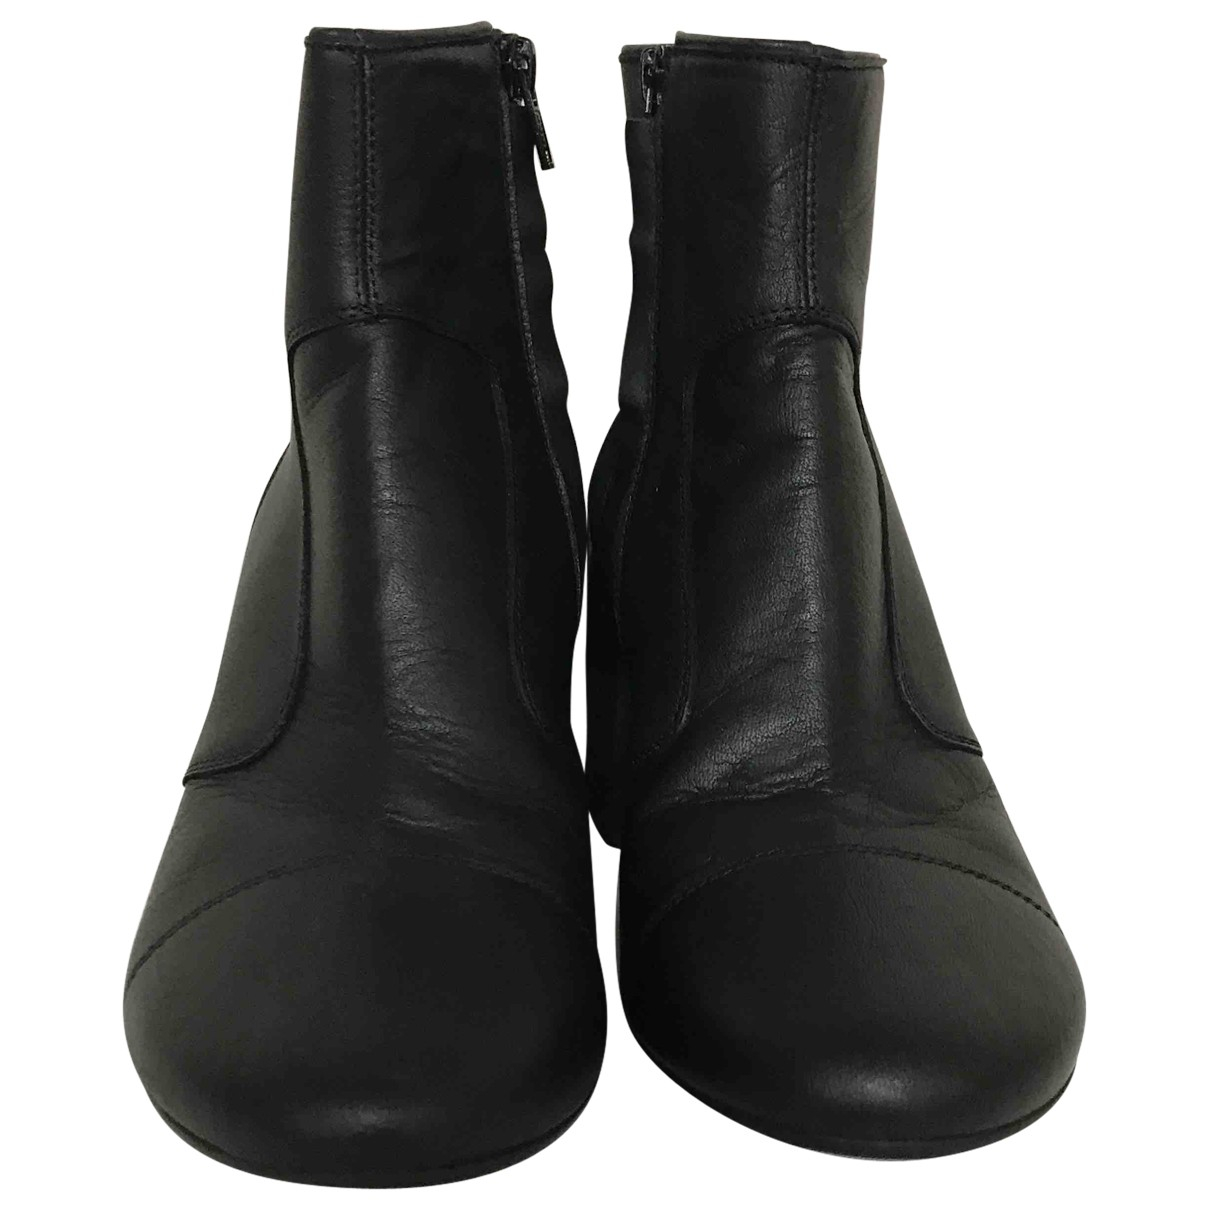 Mm6 \N Black Leather Ankle boots for Women 38 EU